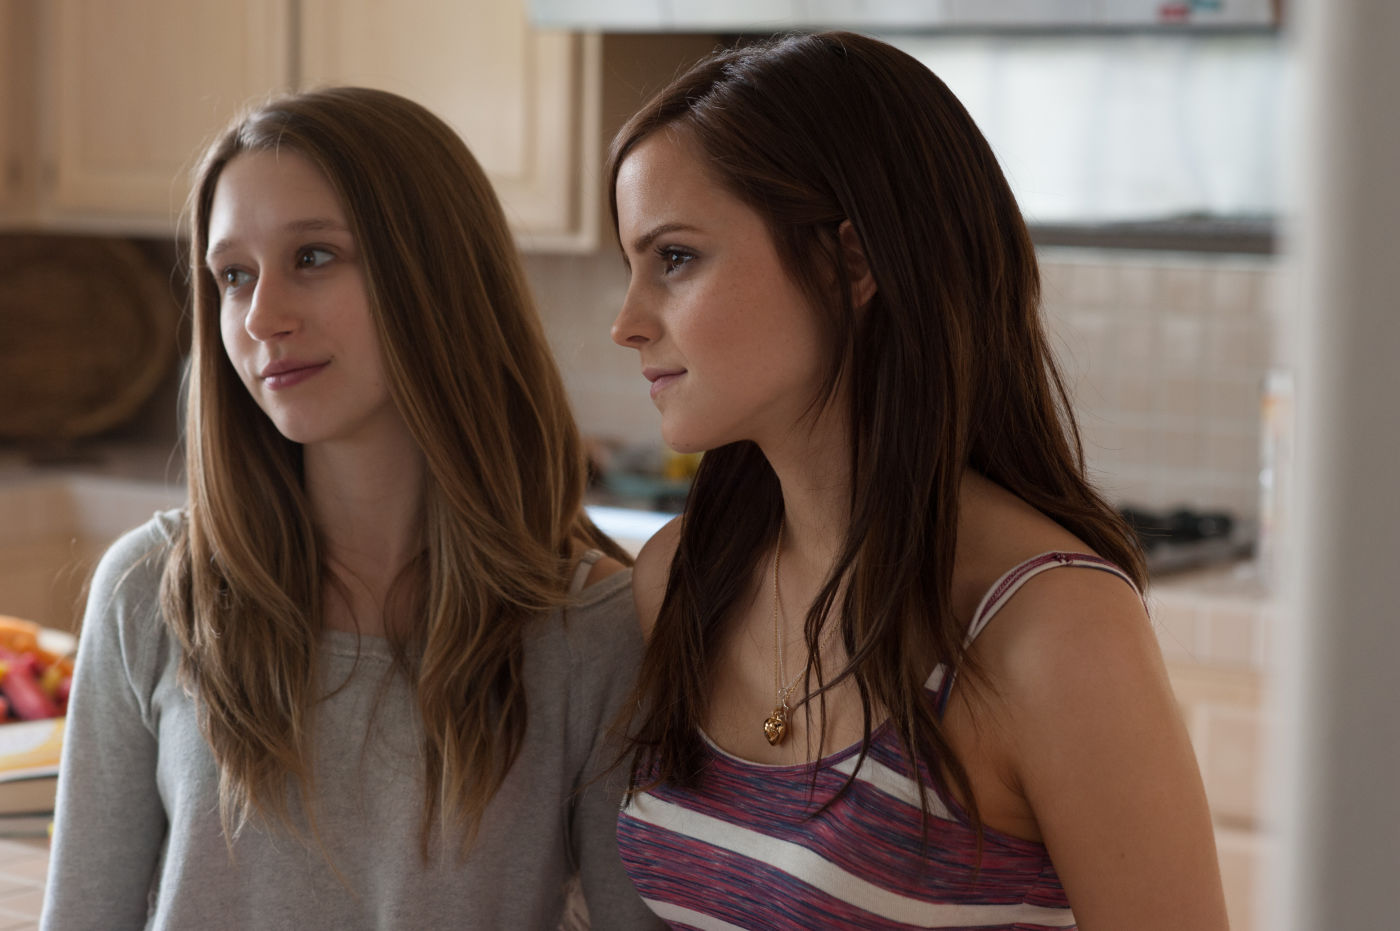 Taissa Farmiga 2019 Wallpapers: Watch: Sofia Coppola Assembles 'The Bling Ring' In New